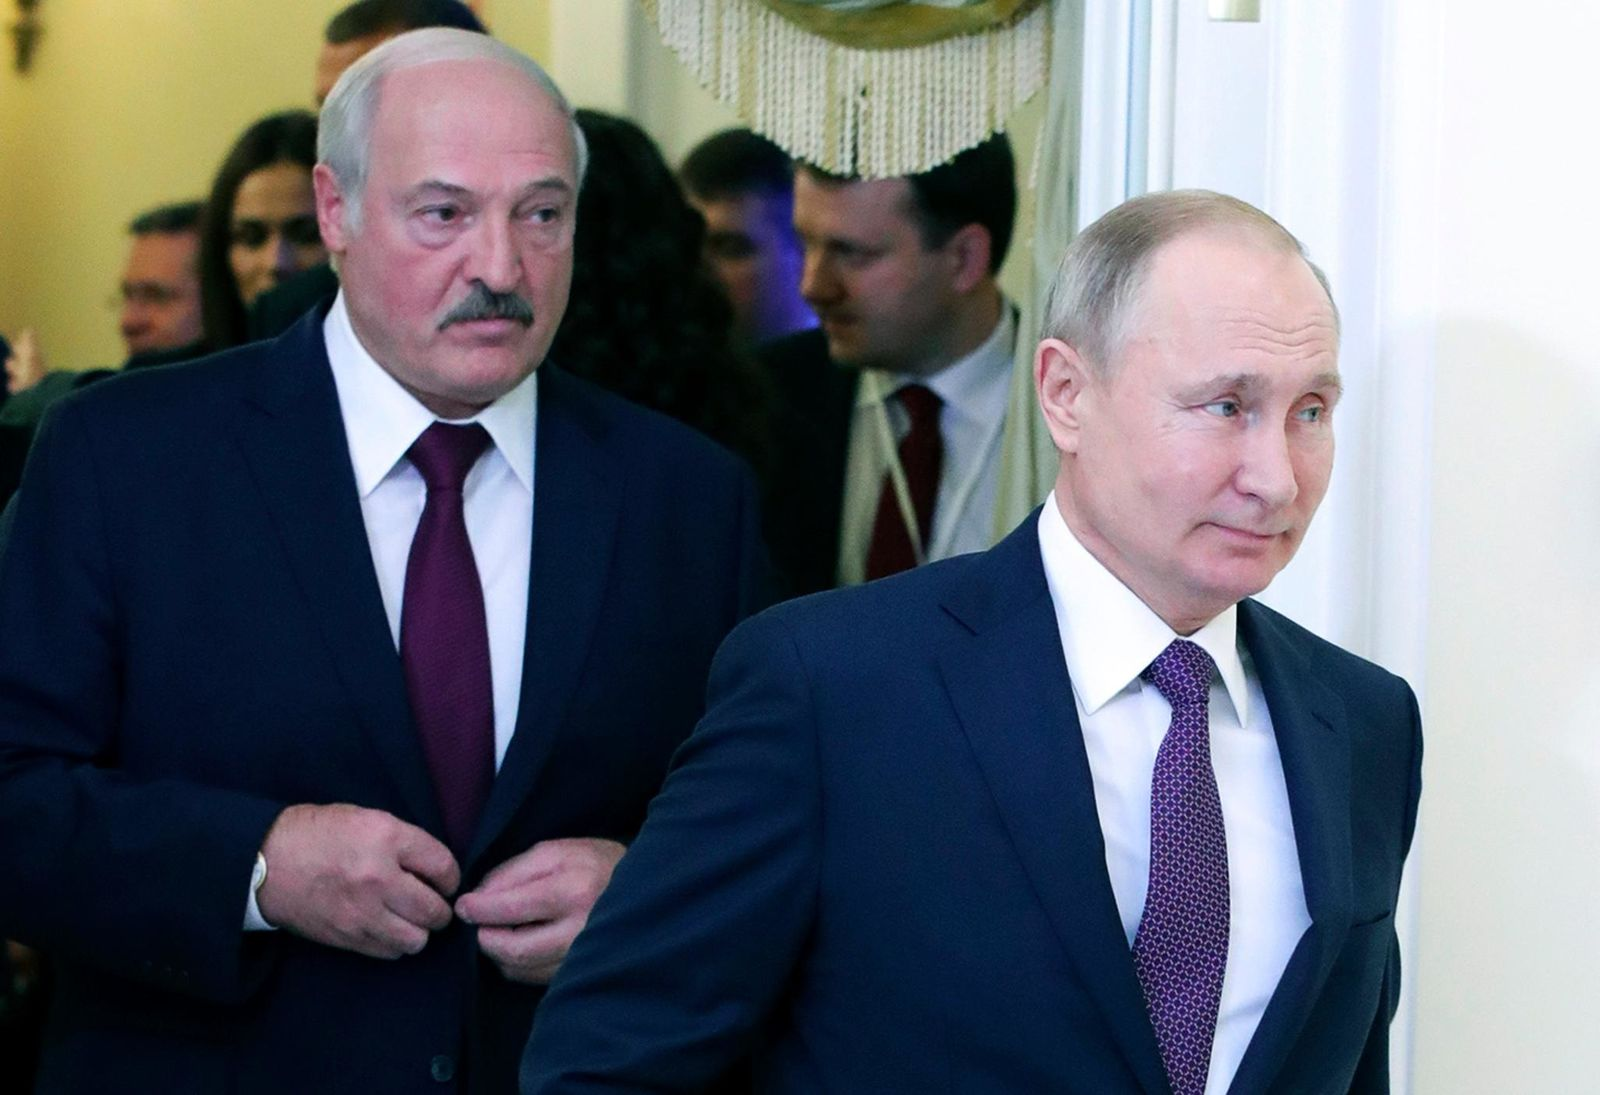 FILE In this file photo taken on Friday, Dec. 20, 2019, Russian President Vladimir Putin, right, and Belarusian President Alexander Lukashenko walk before a meeting of the Supreme Eurasian Economic Council in St. Petersburg, Russia. (Mikhail Klimentyev, Sputnik, Kremlin Pool Photo via AP, File)